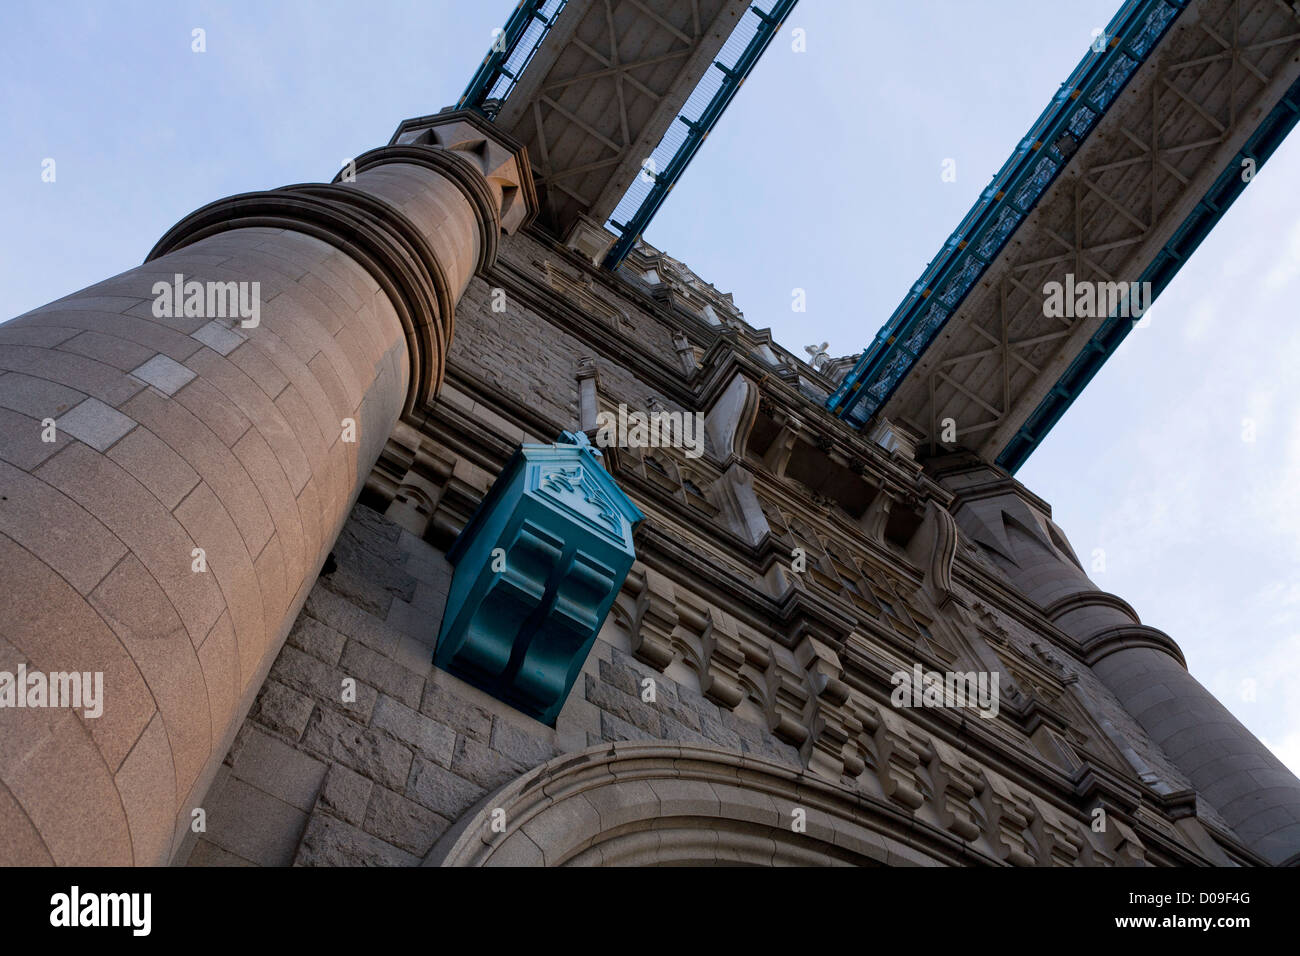 Structural details of the Tower Bridge, London - Stock Image